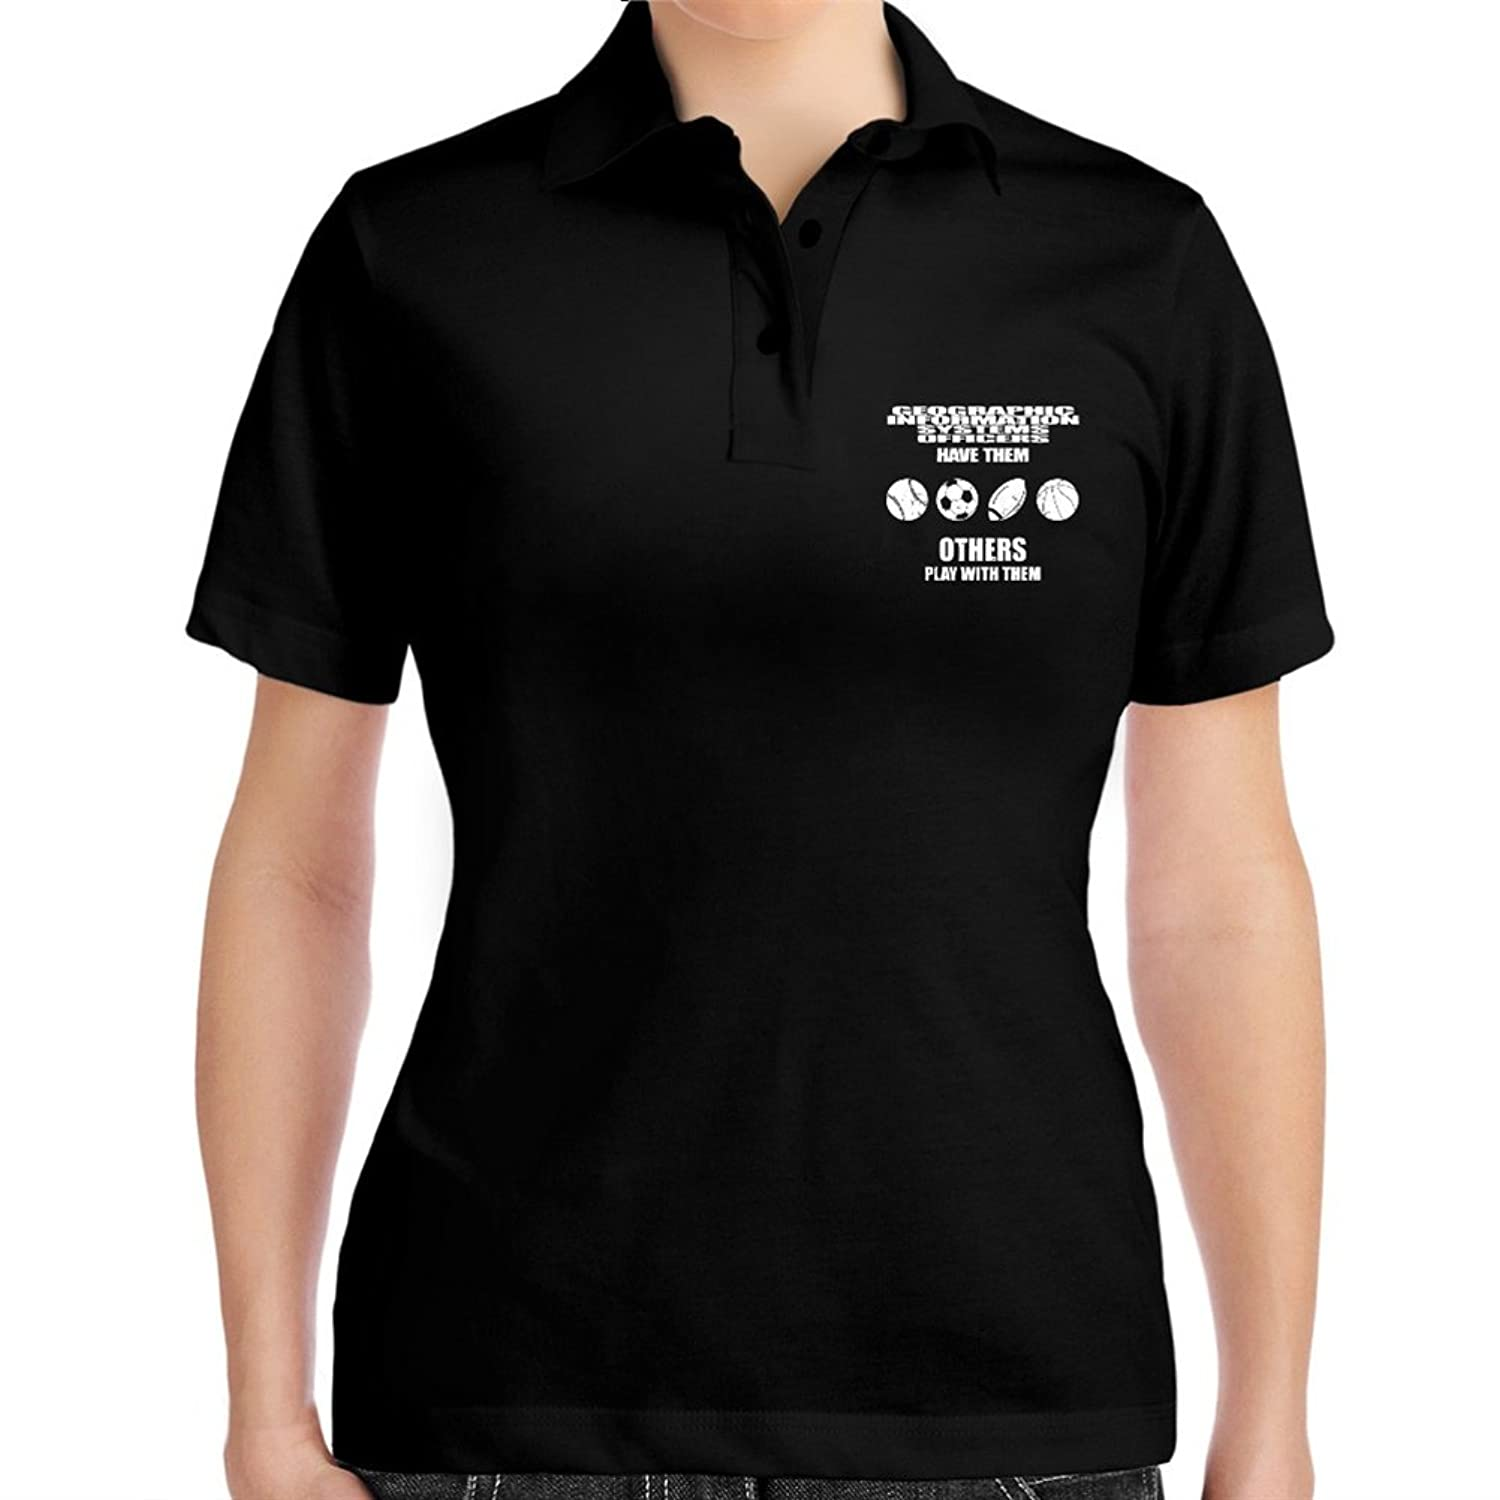 Geographic Information Systems Officer have them others play with them Women Polo Shirt